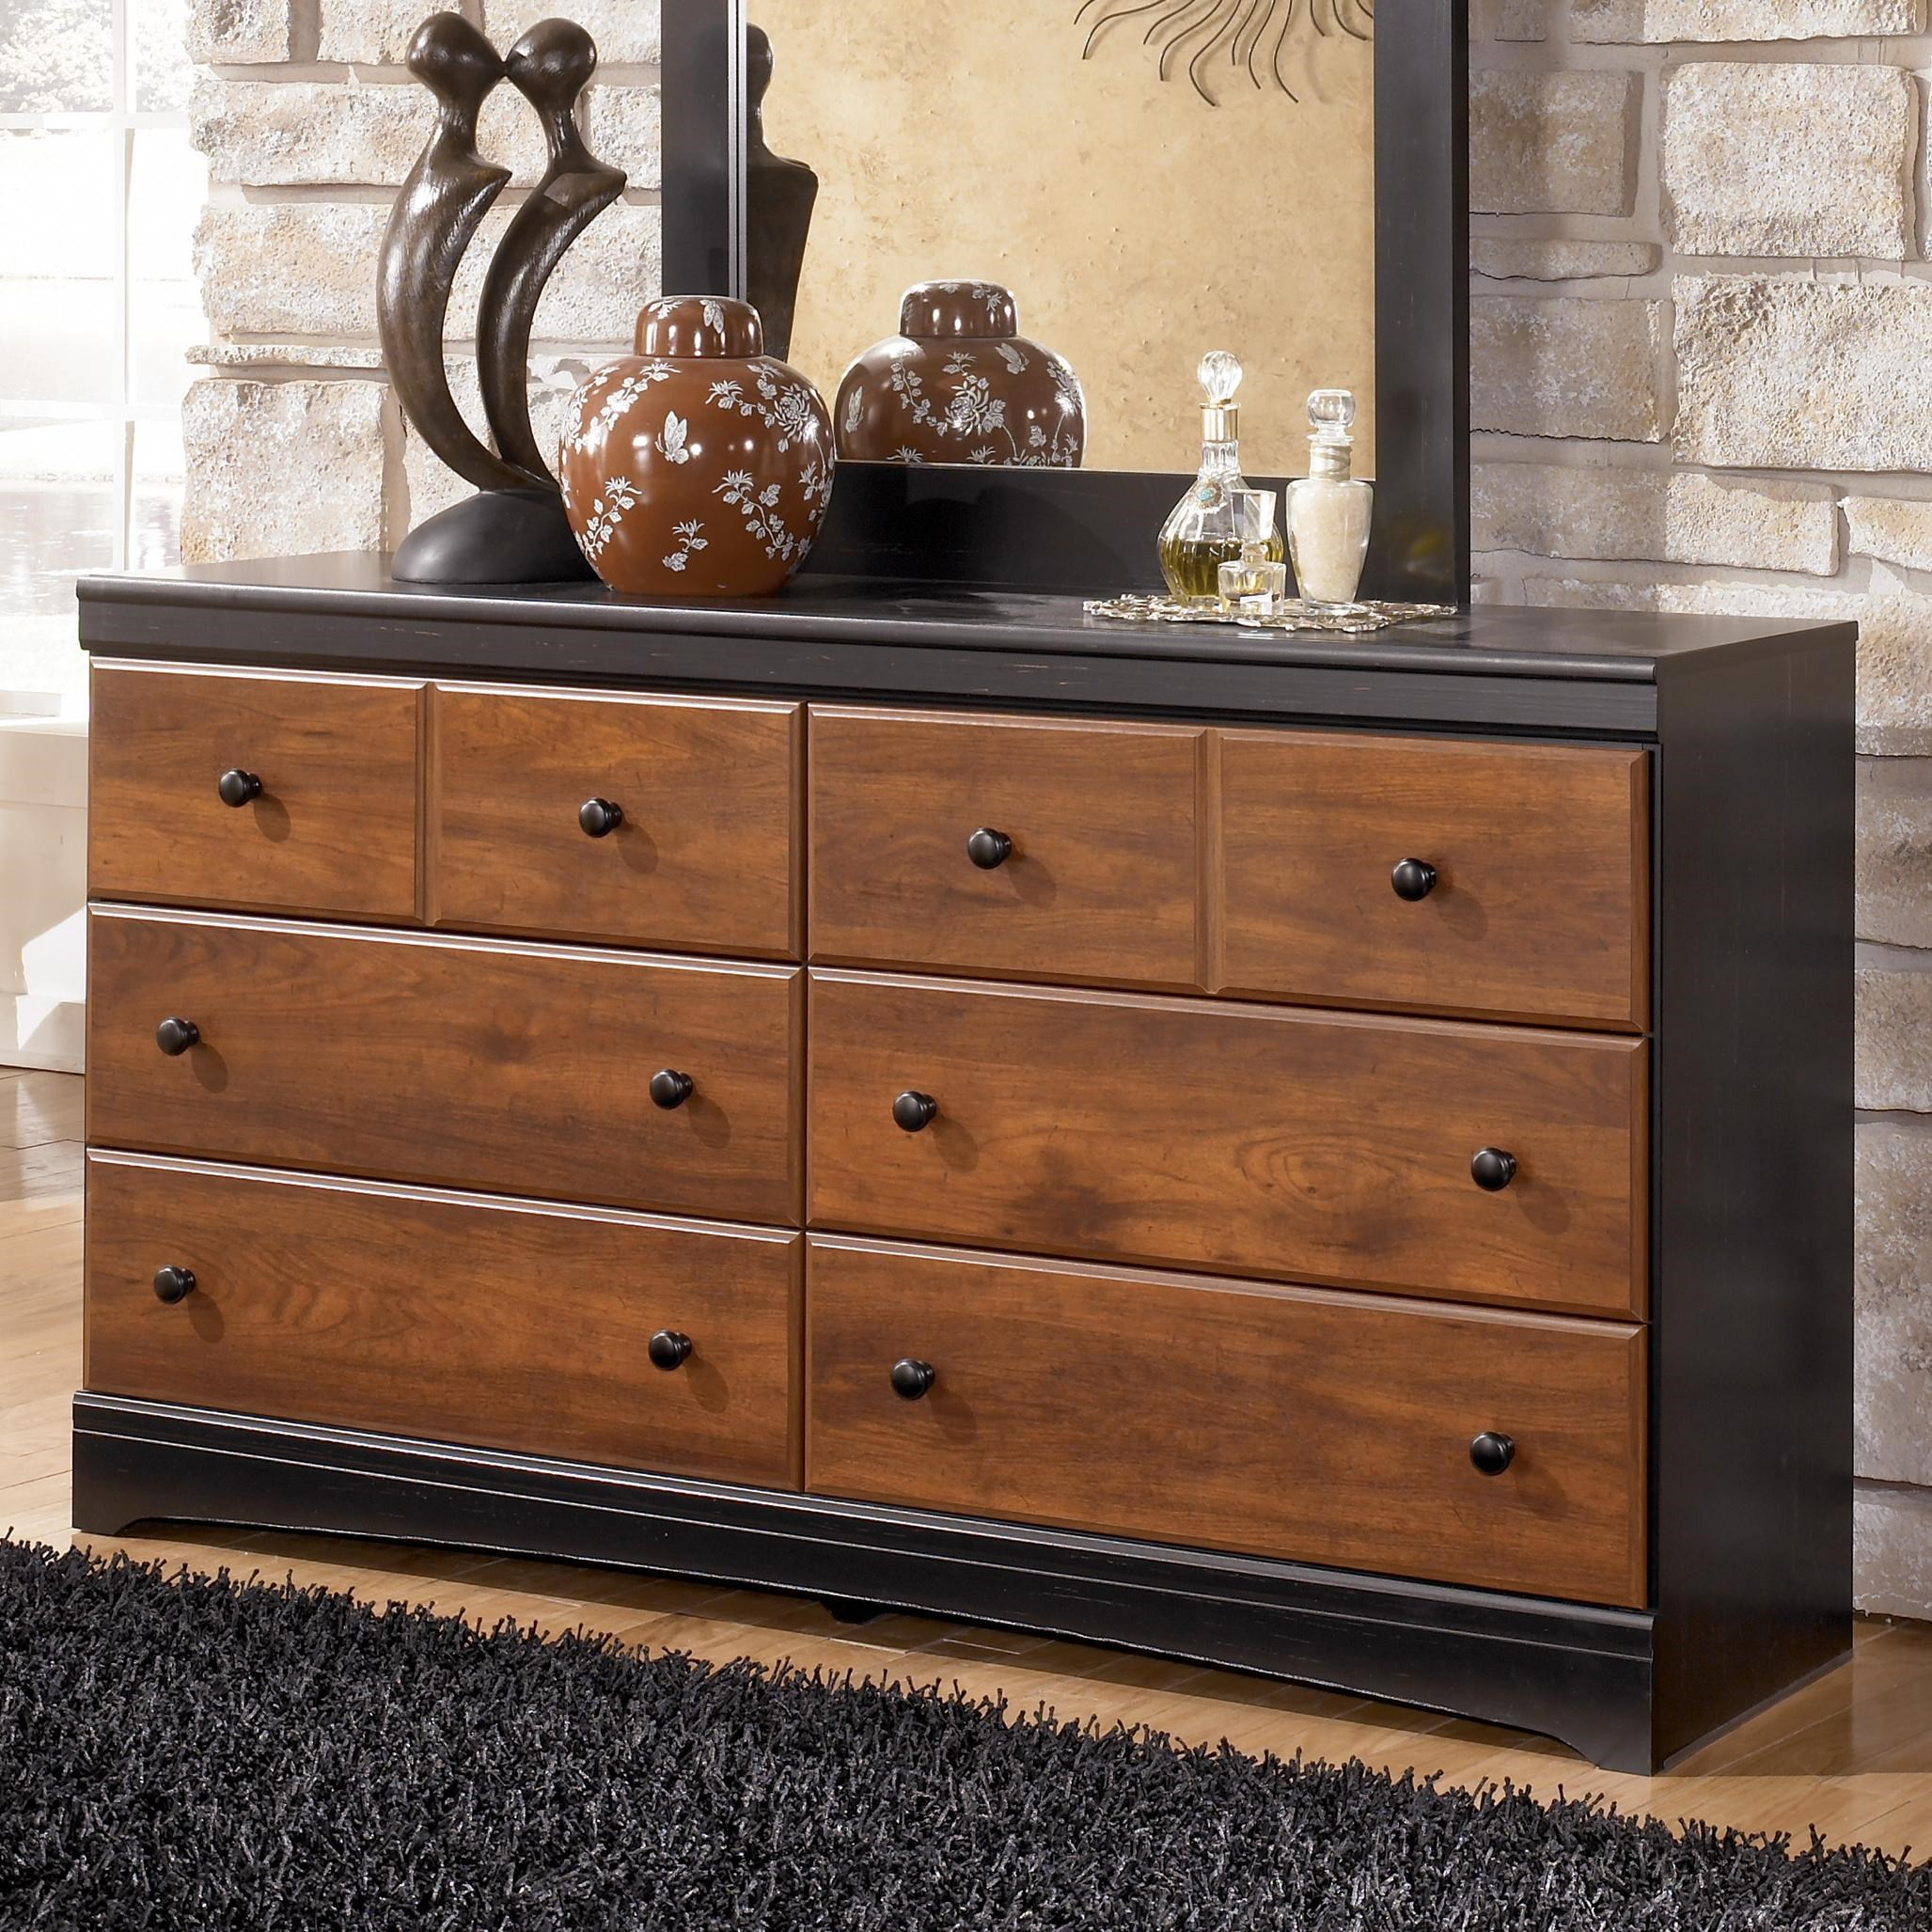 Merveilleux Signature Design By Ashley Aimwell Two Tone Finish Dresser With 6 Drawers